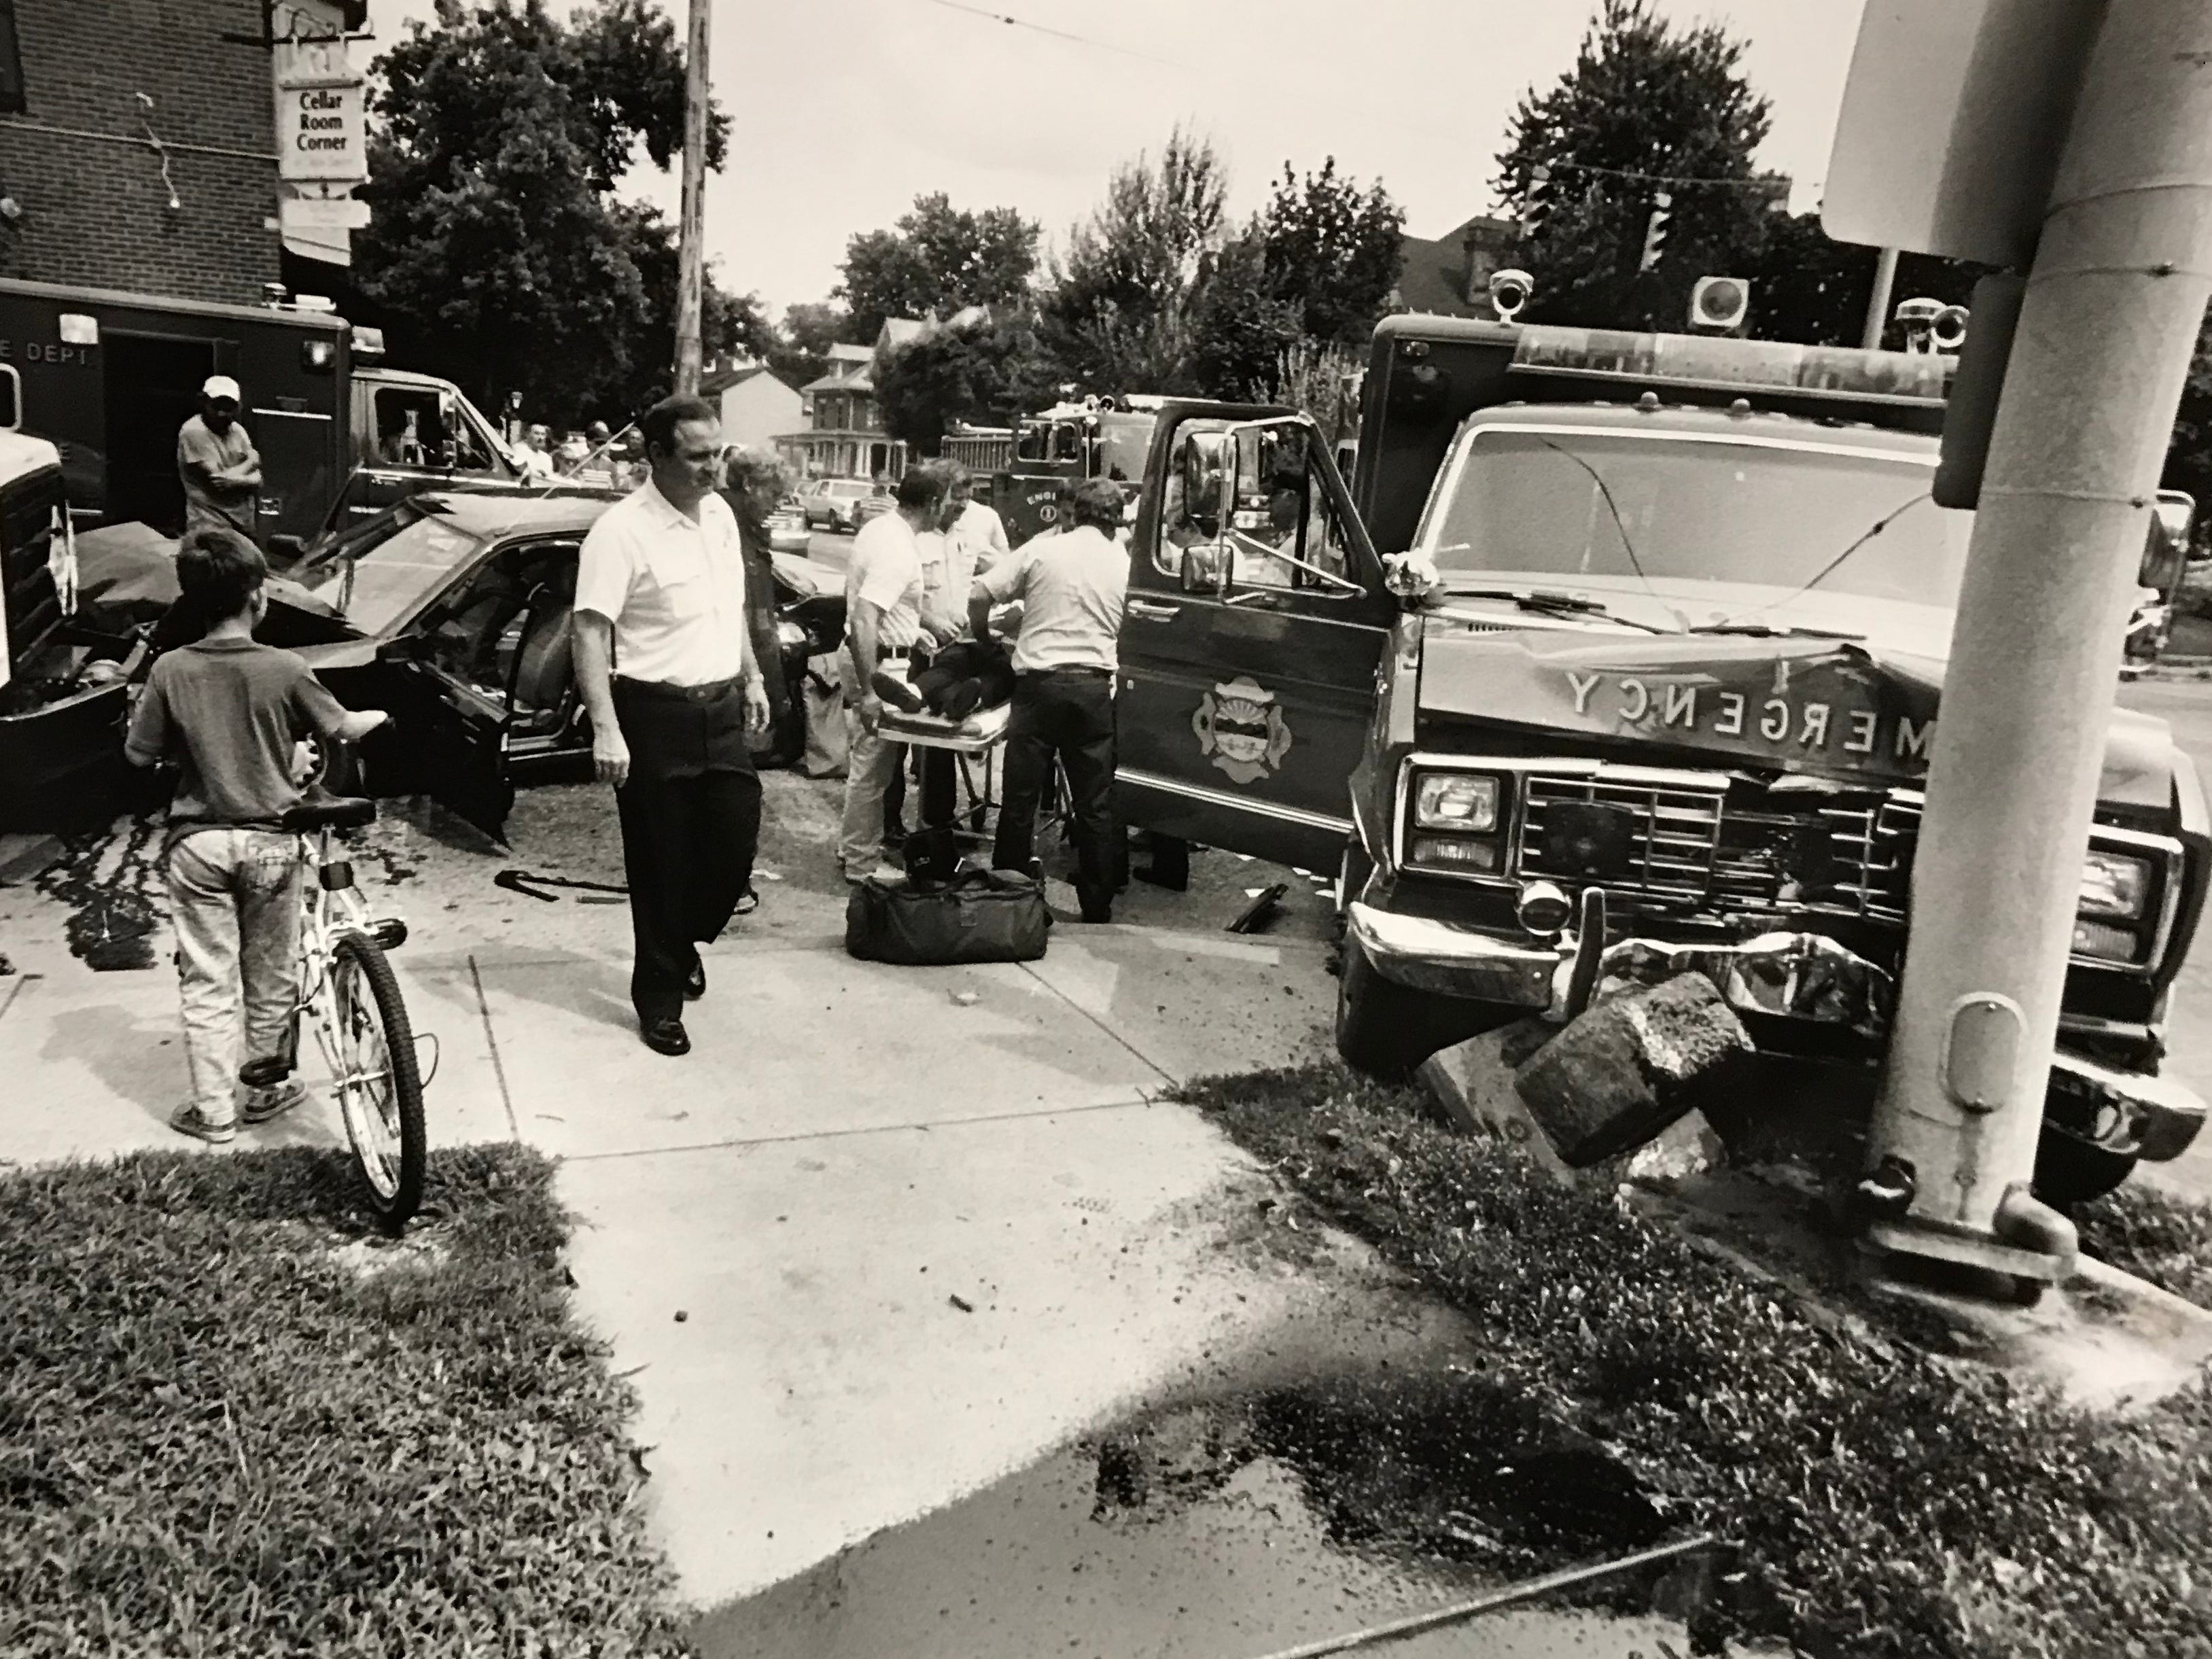 This undated Gazette file photo shows a crash involving an ambulance at the corner of High and Water streets.